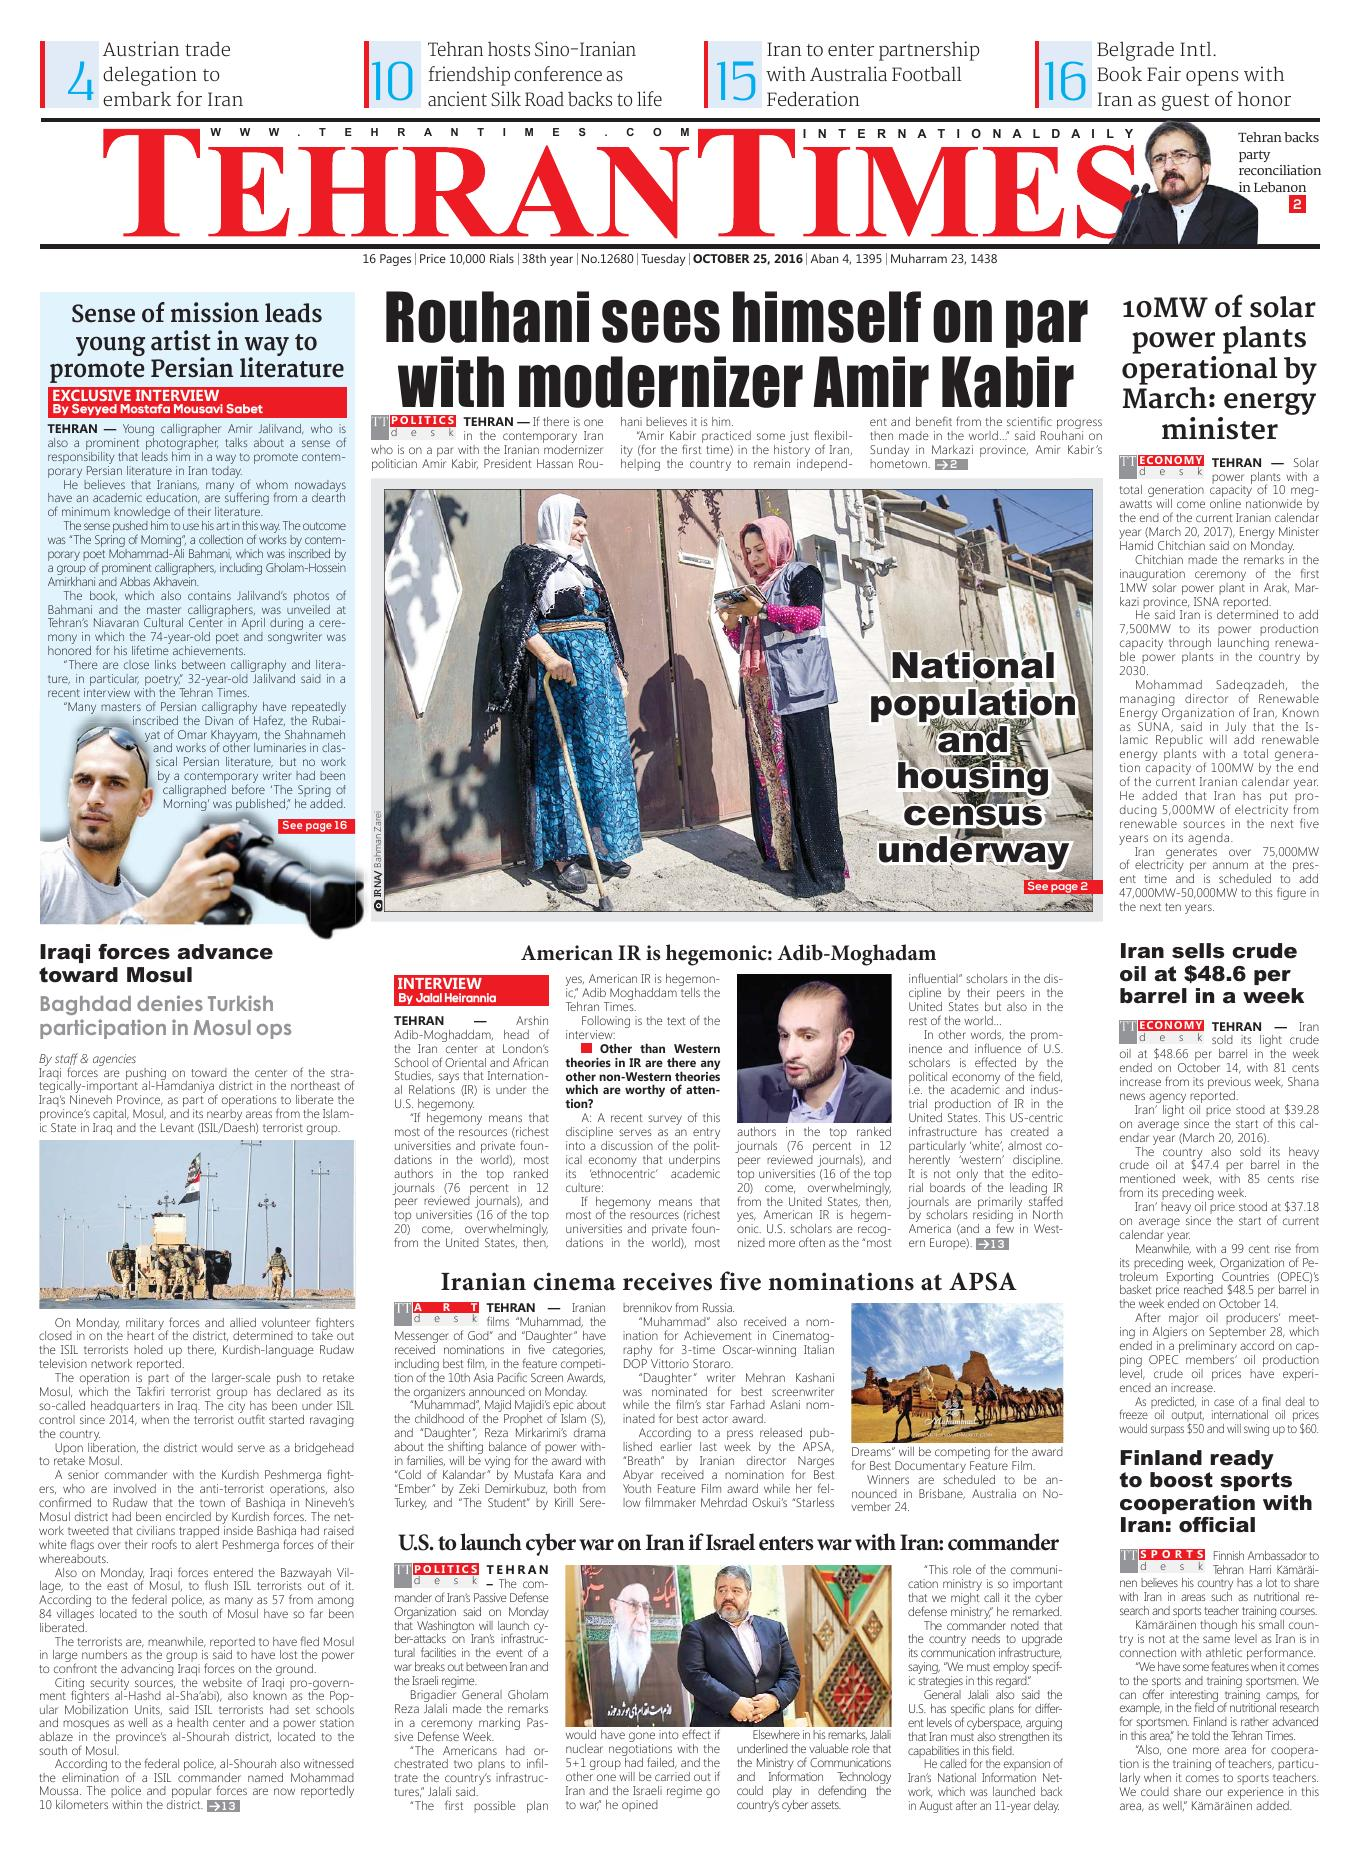 Tehran Times, Frontpage